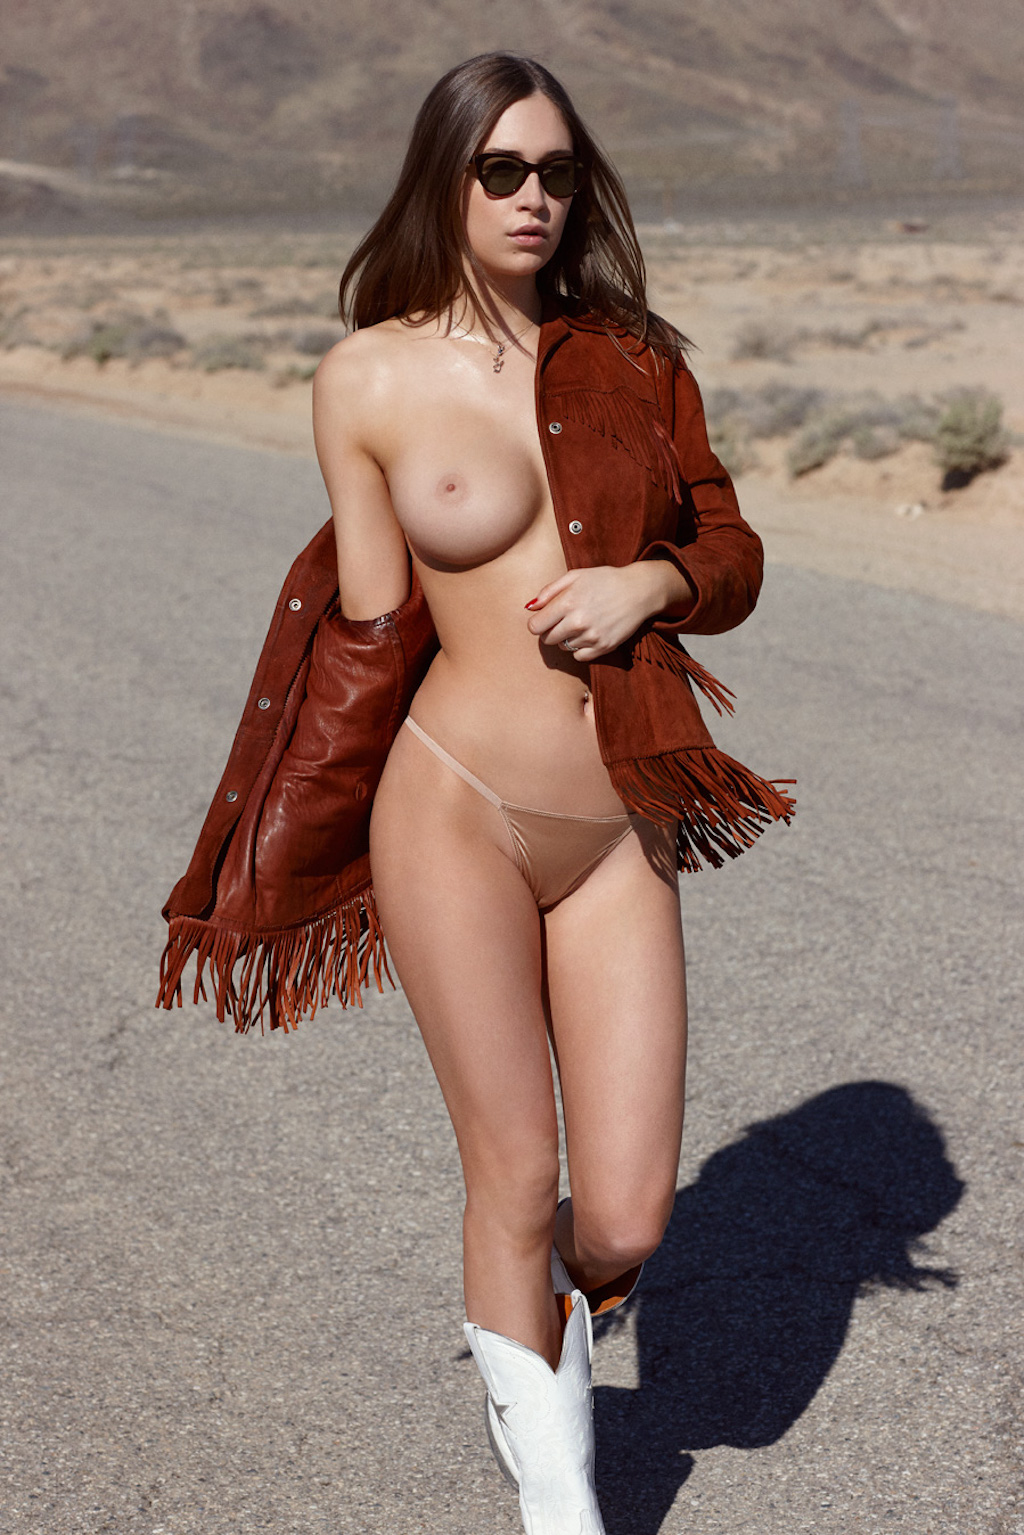 Head on out the highway with June Playmate 2017 Elsie Hewitt, even if she has to hoof it.